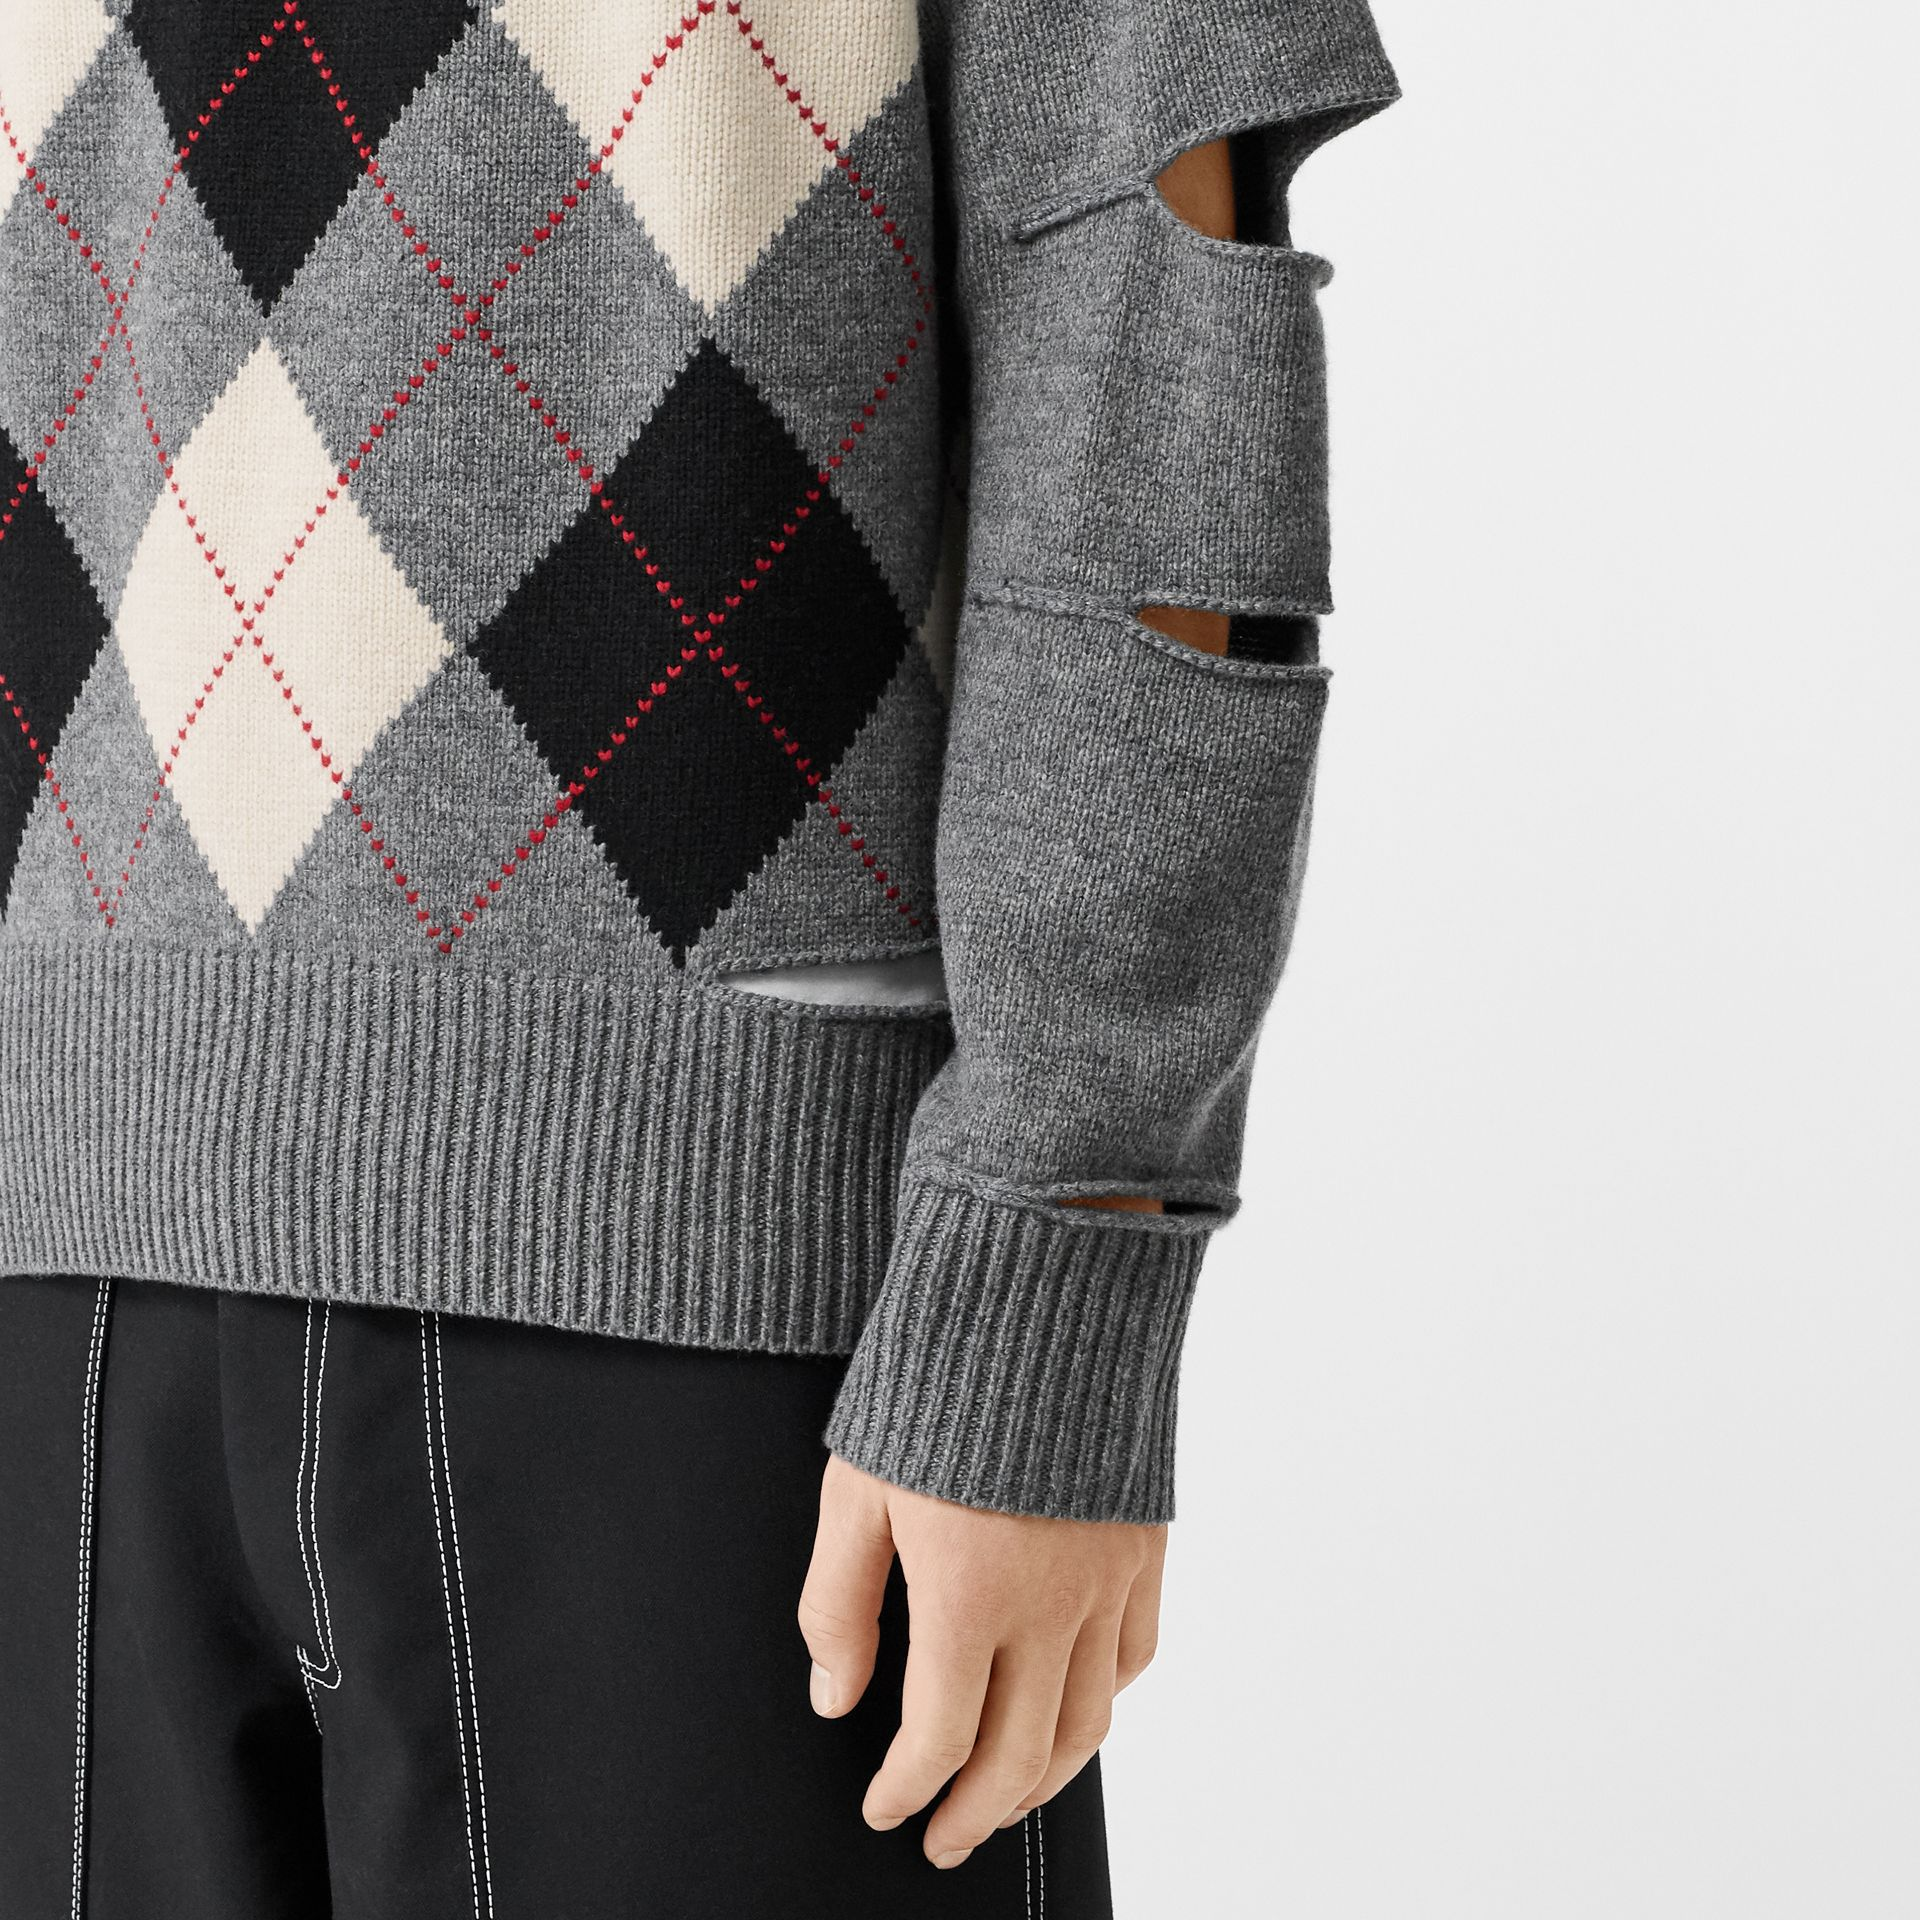 Cut-out Detail Merino Wool Cashmere Sweater in Mid Greymelange - Men | Burberry Hong Kong - gallery image 1